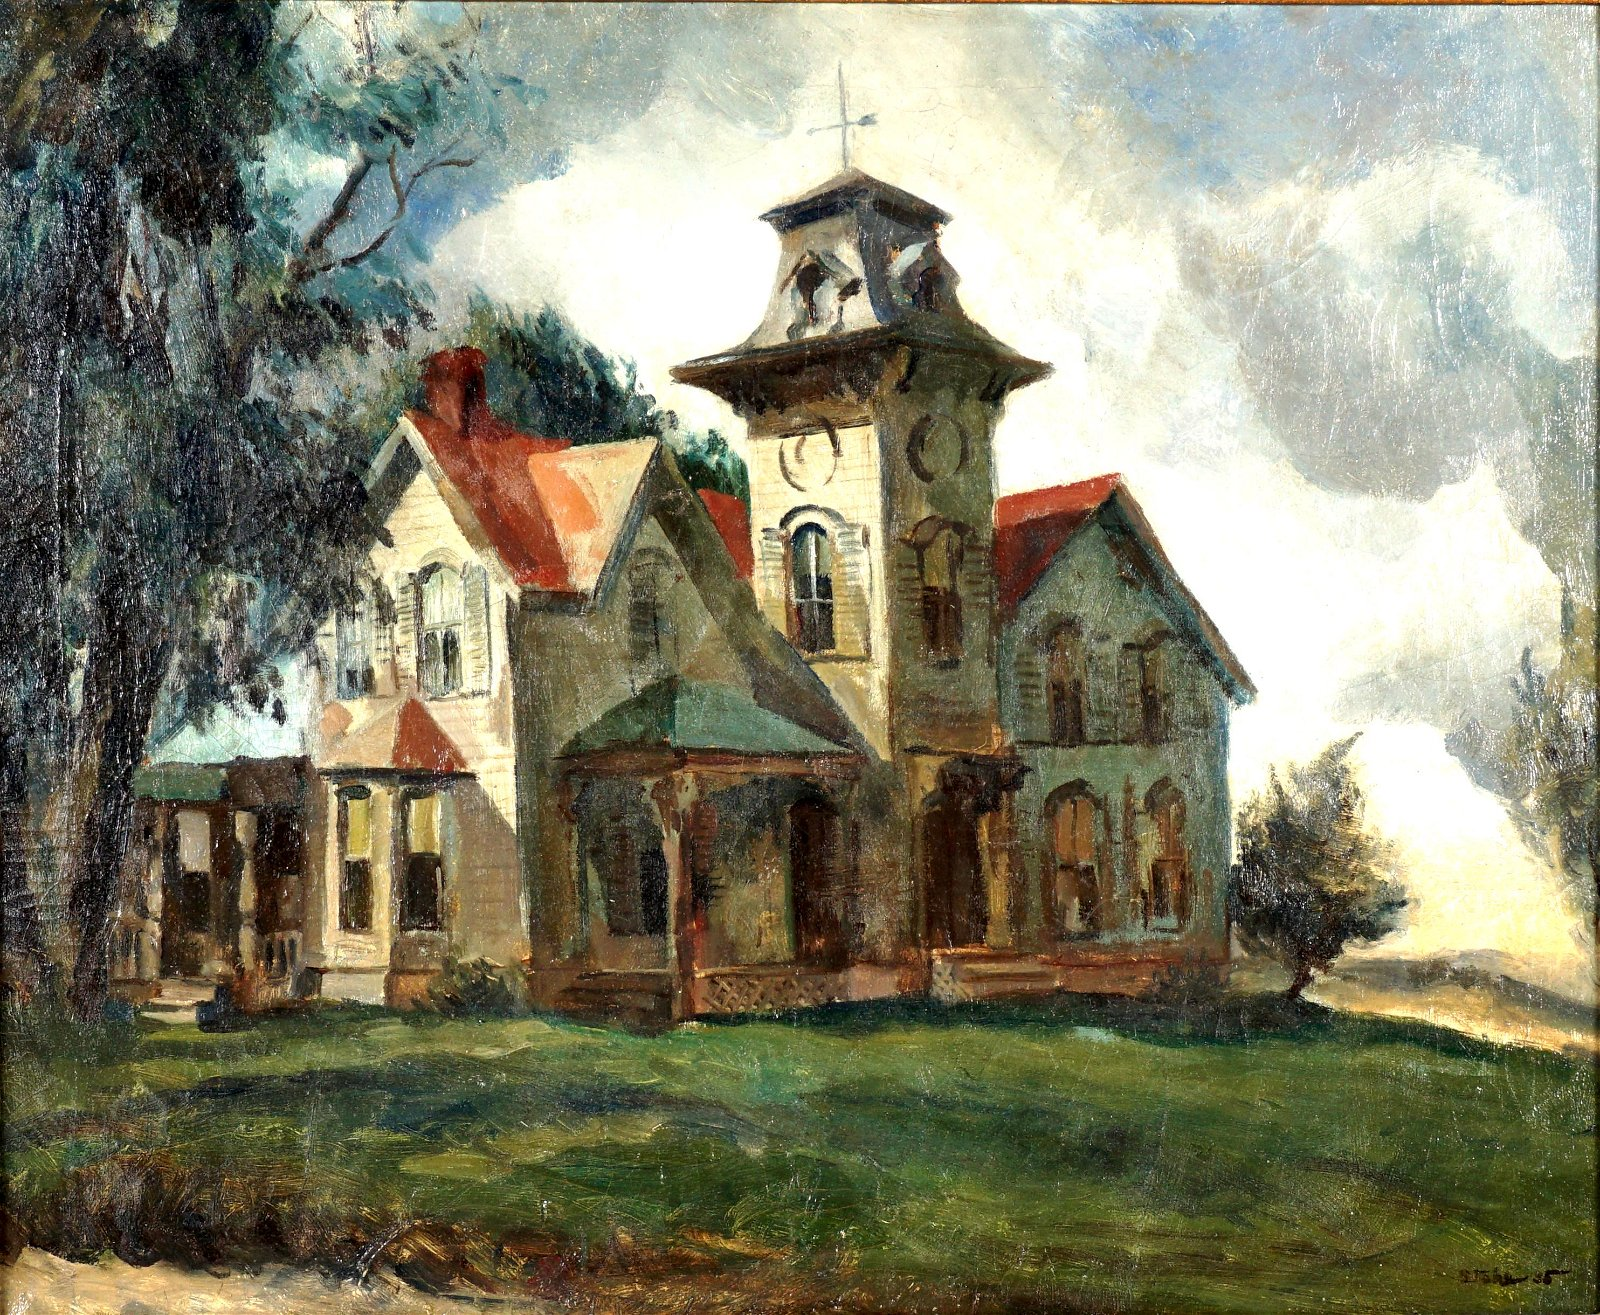 1935 Ben Stahl House in Landscape Painting